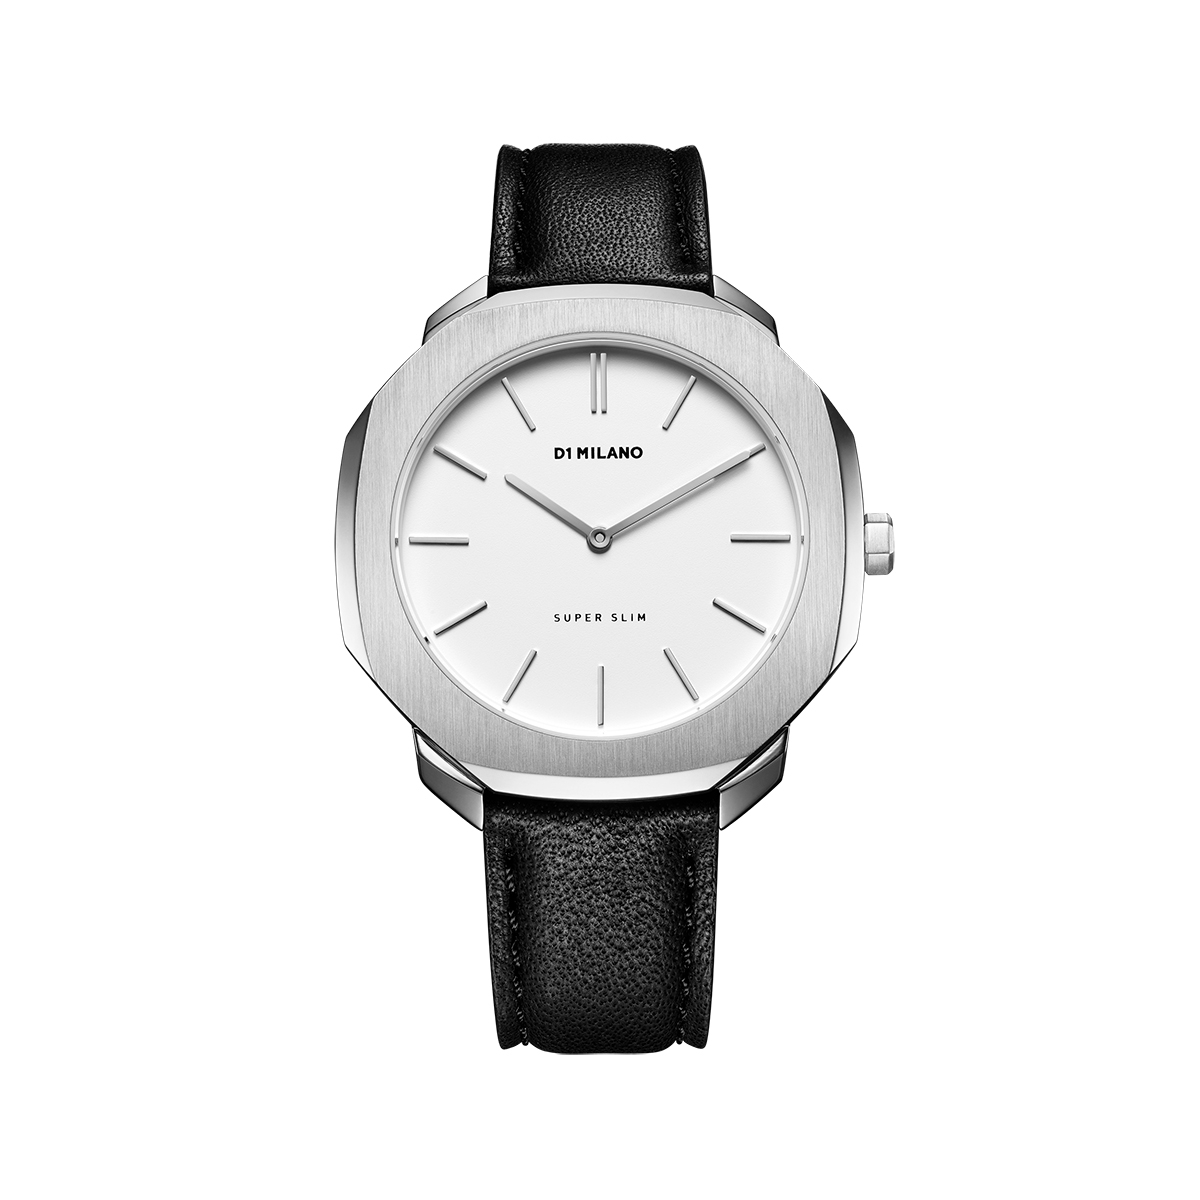 D1 MILANO ディーワンミラノ Super Slim Silver Case with Black Leather Strap